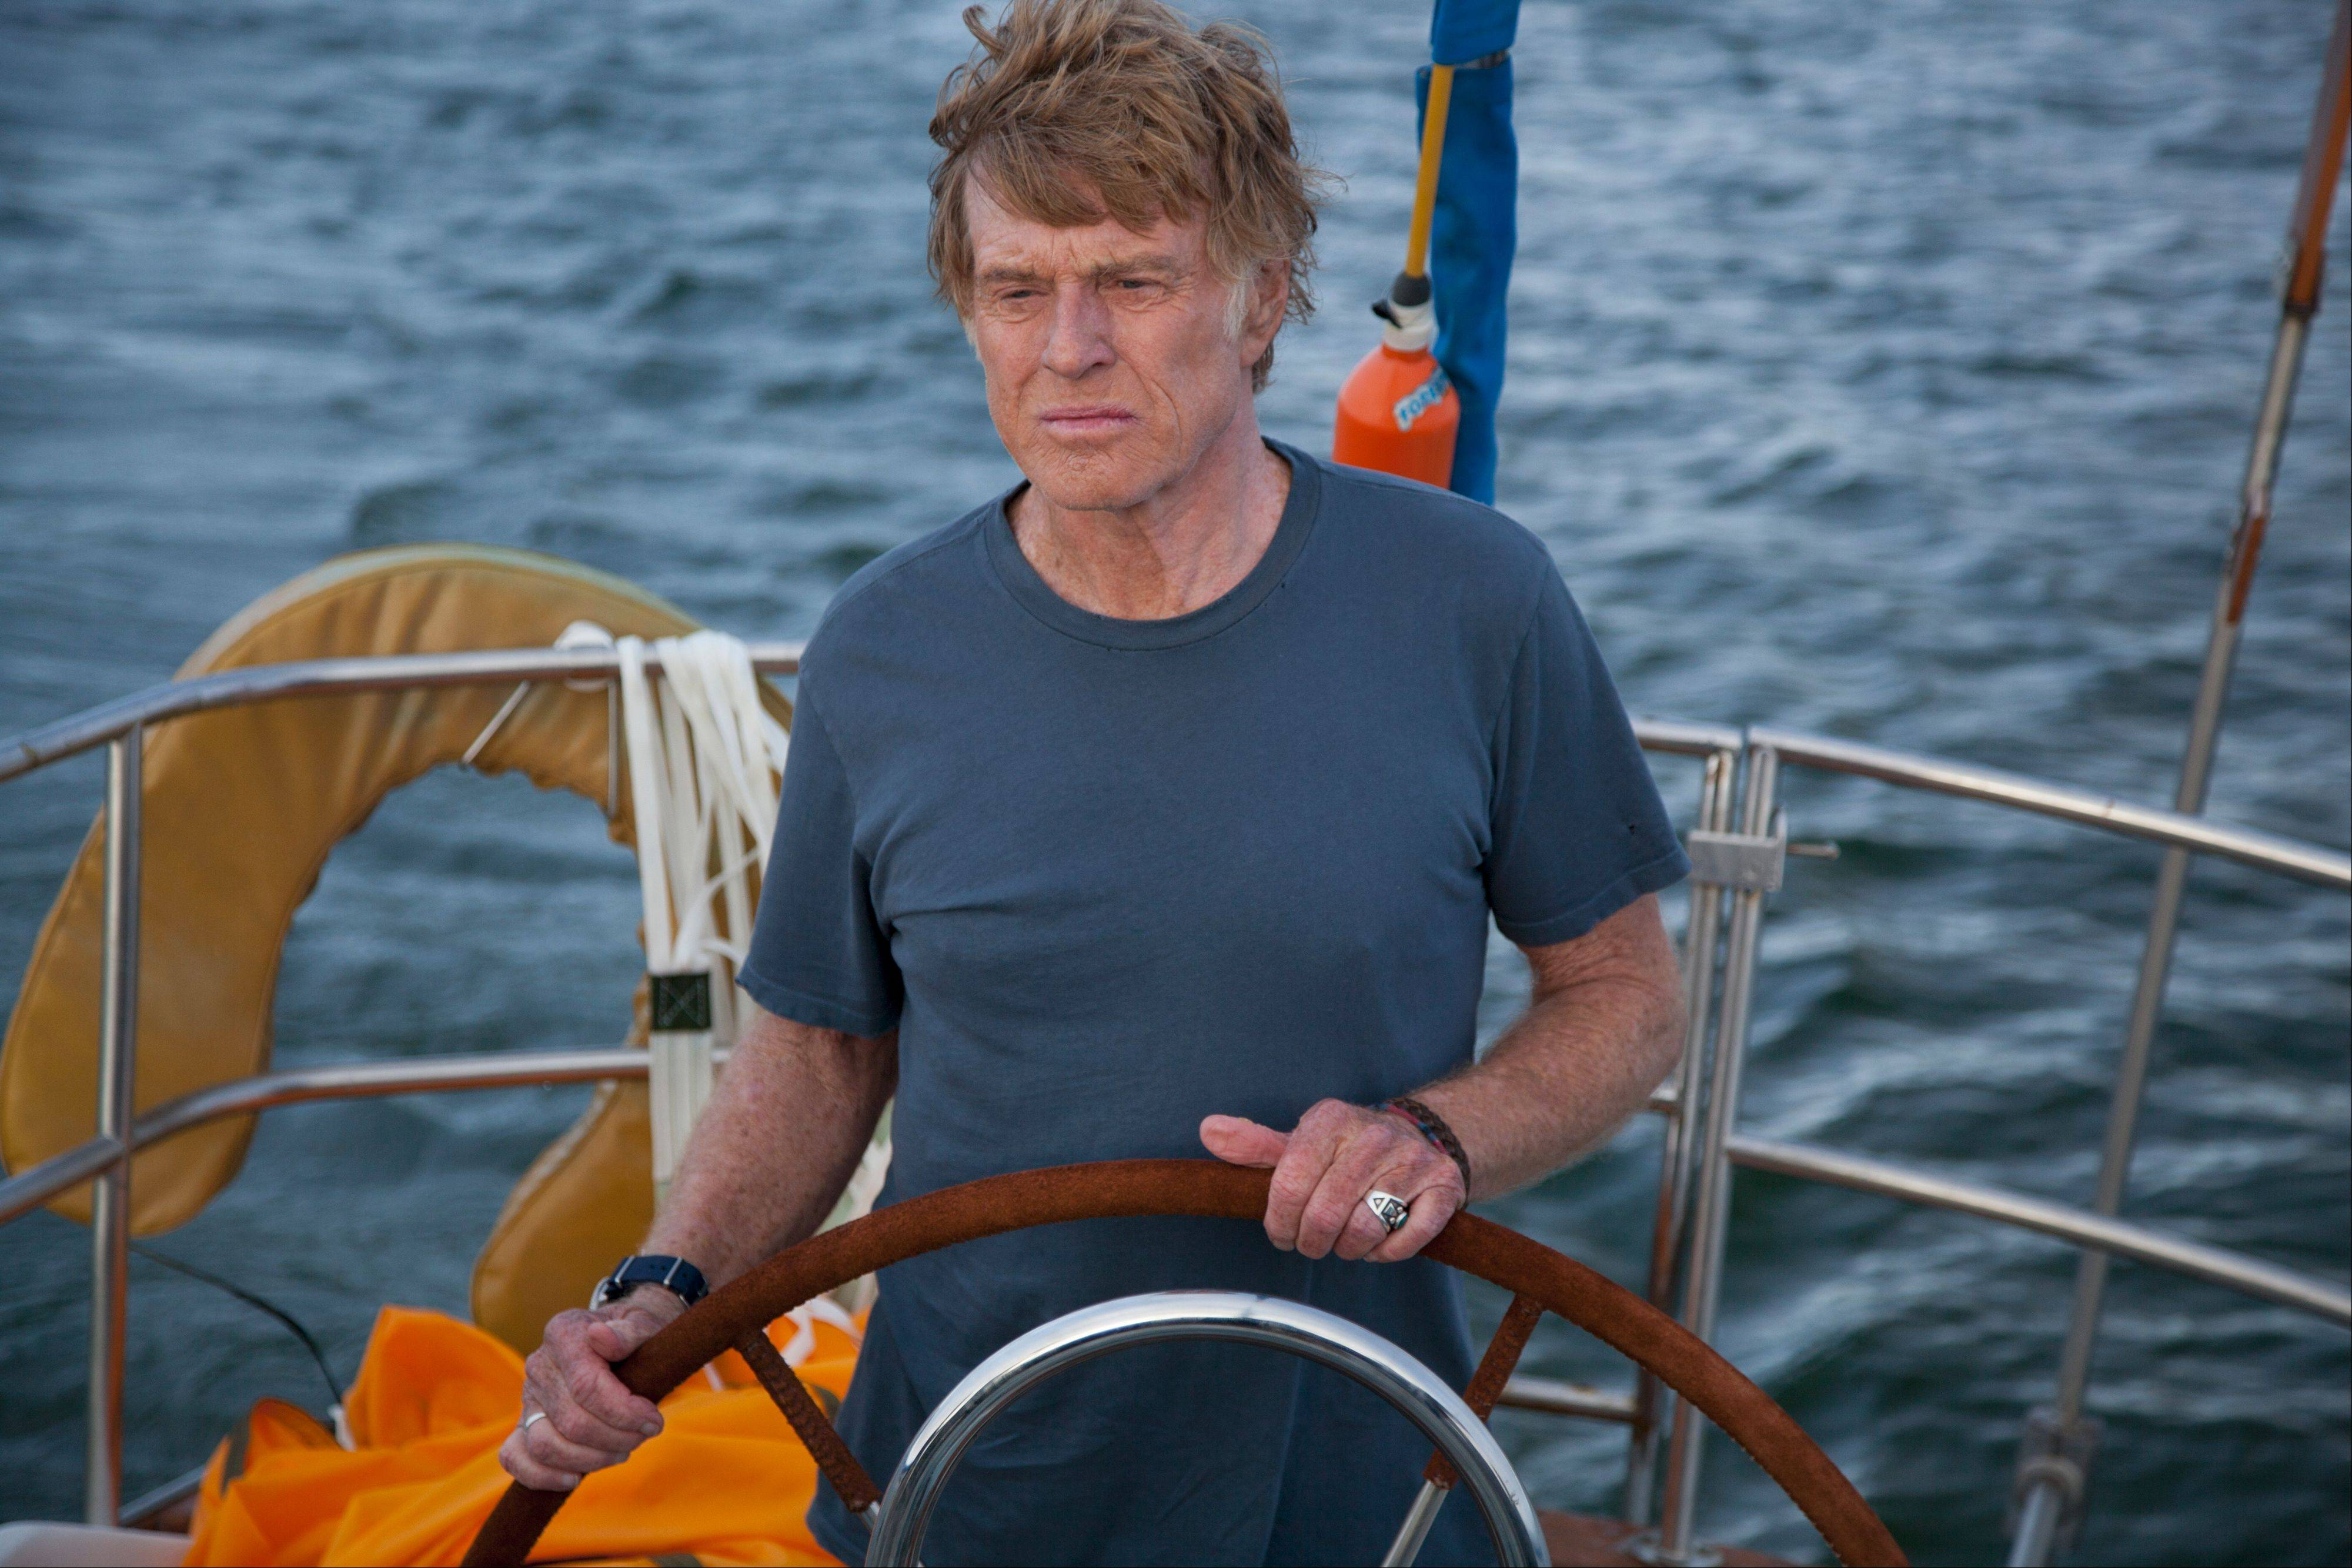 Redford grasps the gravity of sea survival in 'All is Lost'